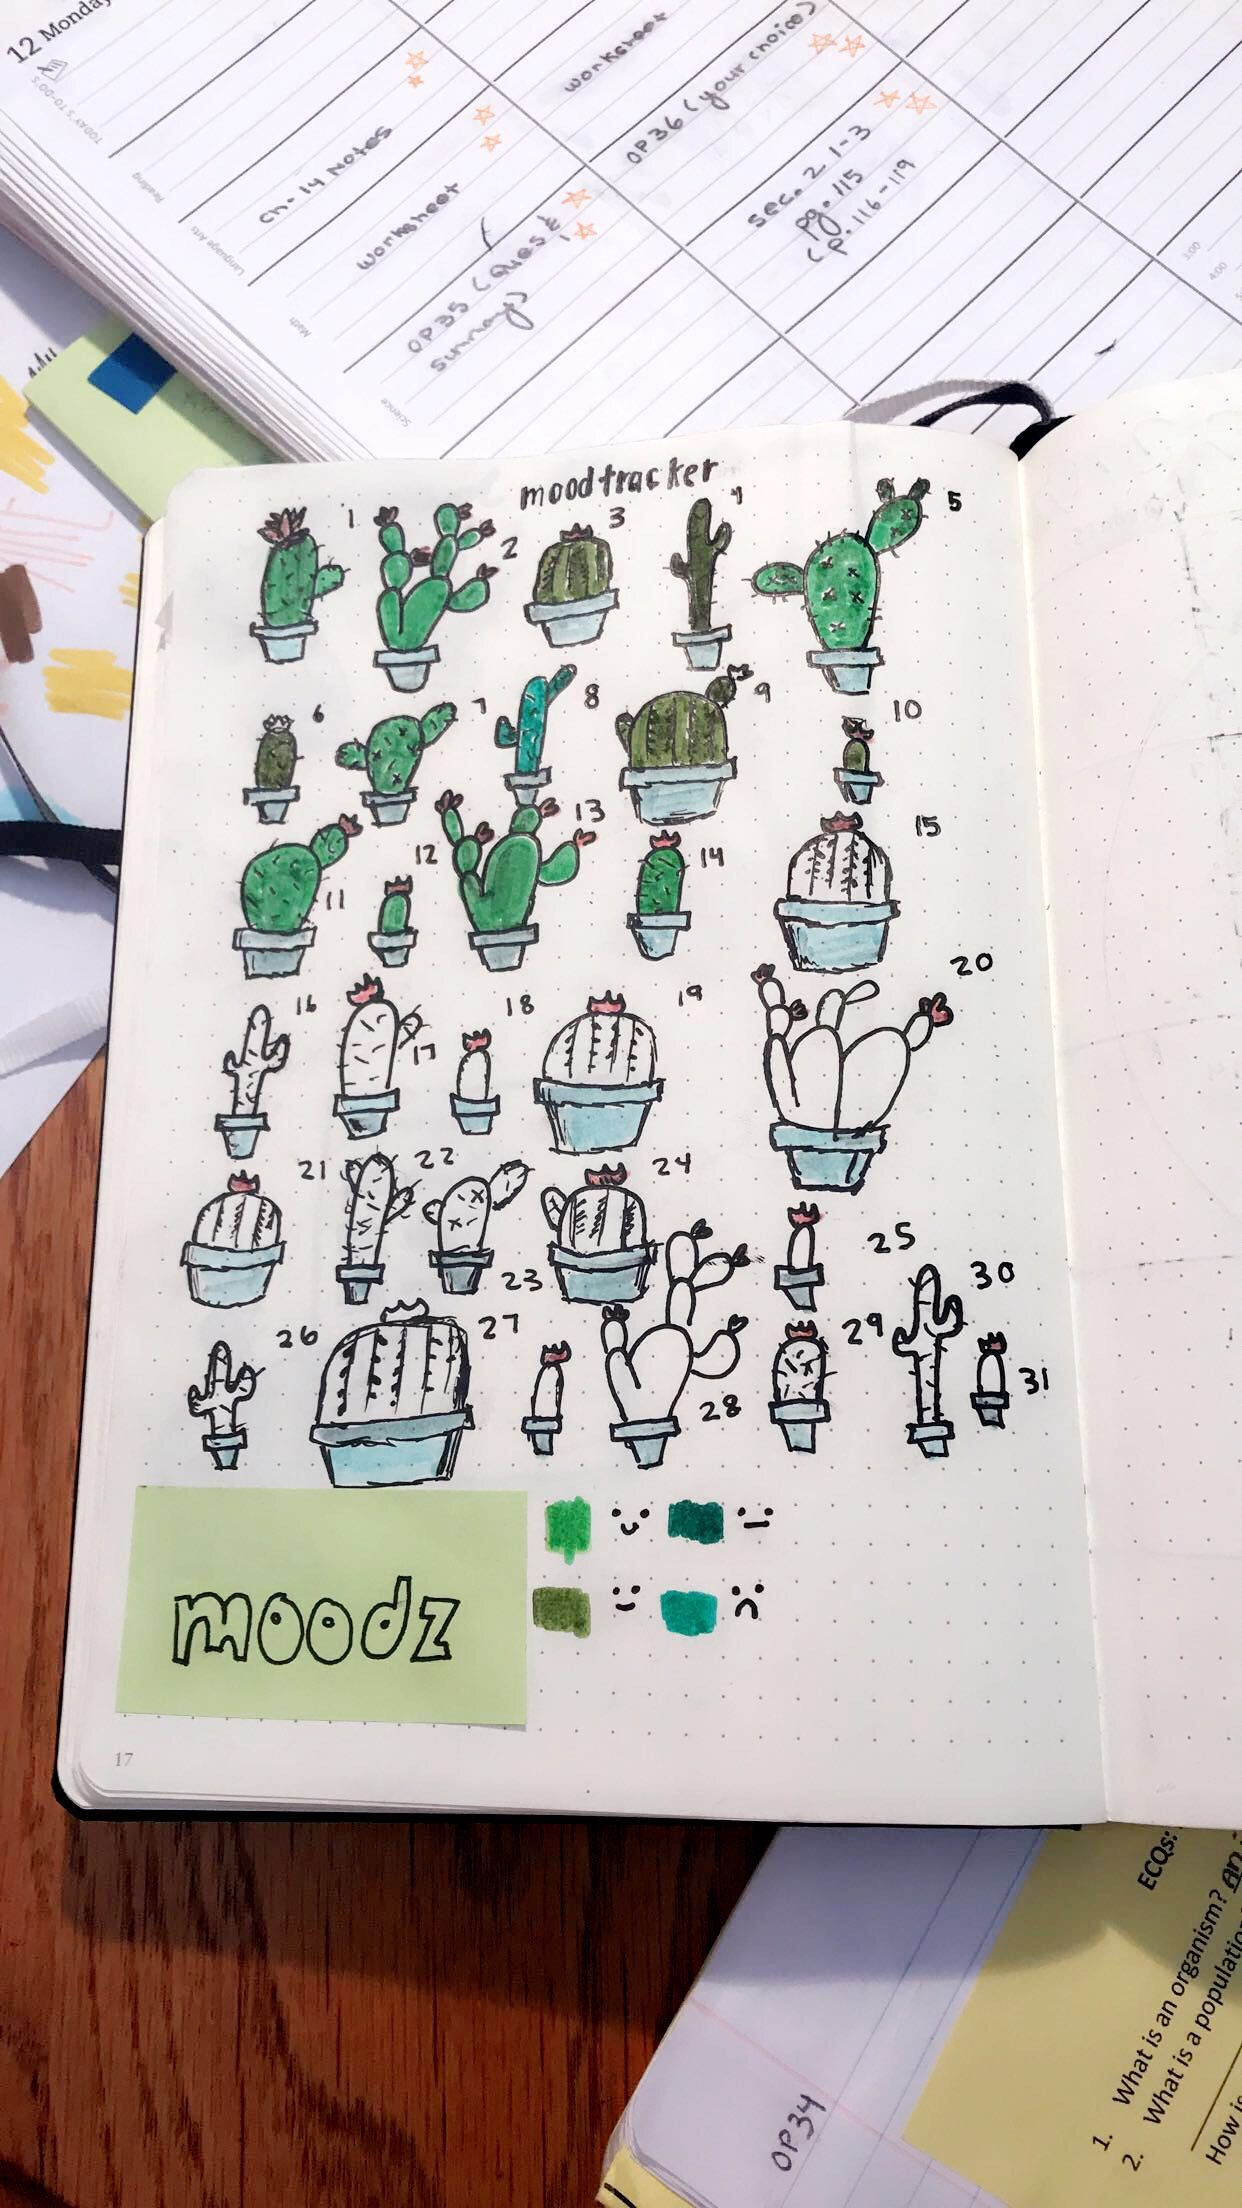 Pin by Julia Outeda on Cool stuff | Bullet journal, Journal